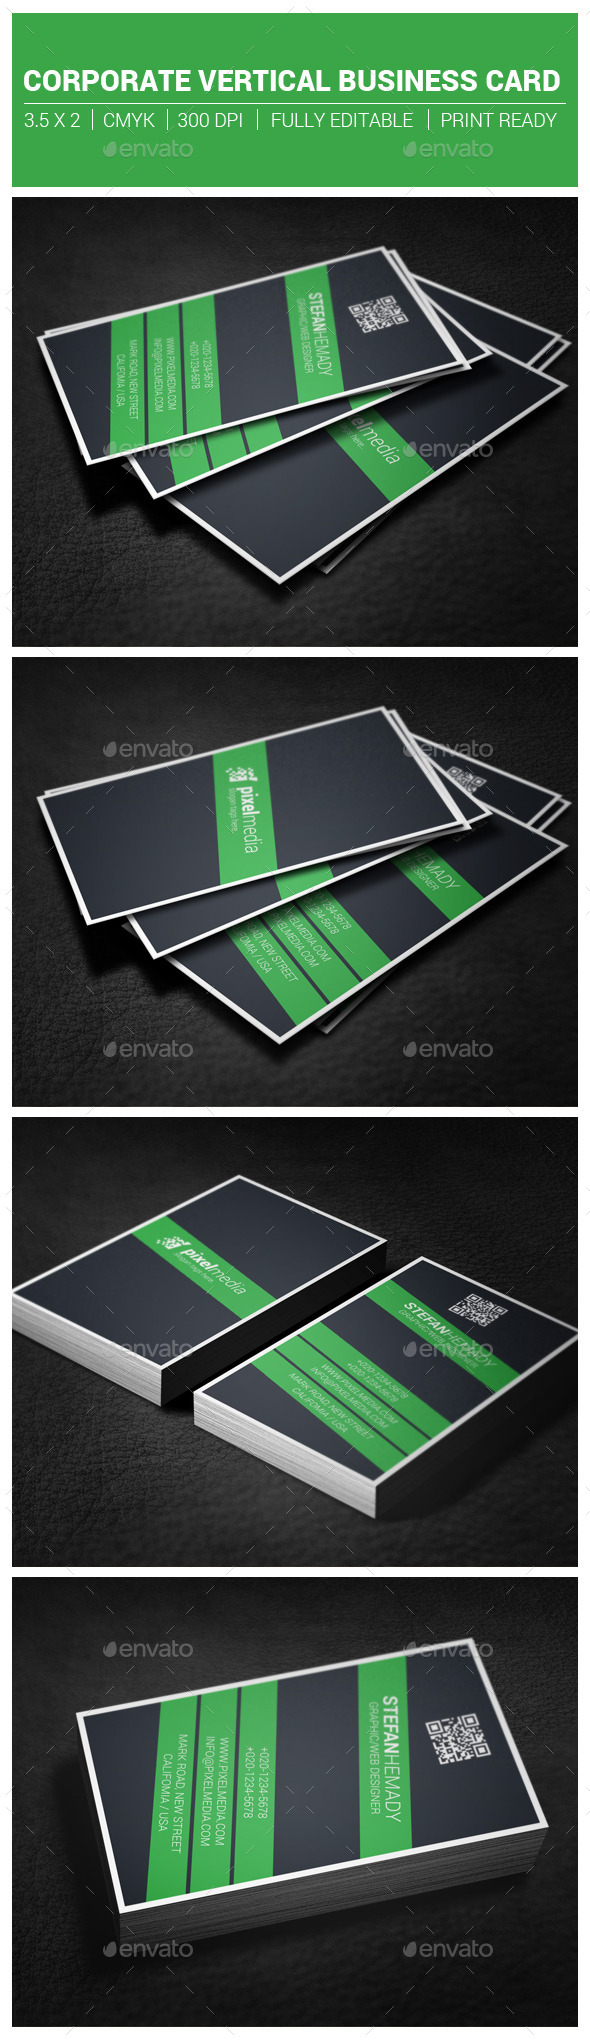 Corporate Vertical Business Card - Corporate Business Cards